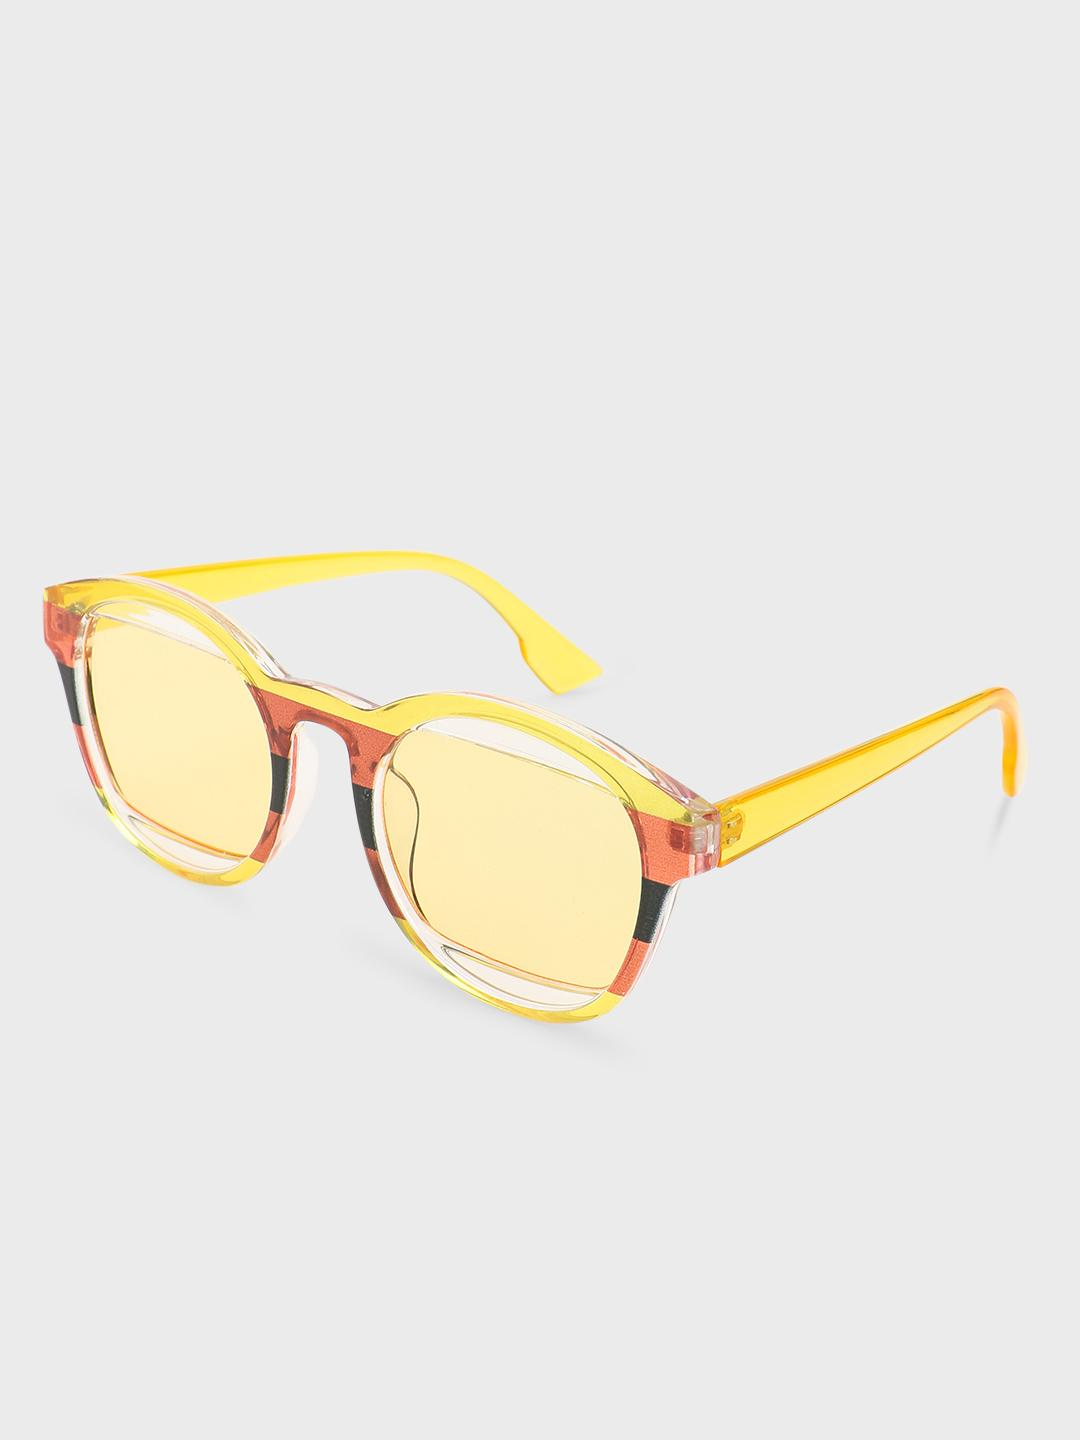 Pataaka Yellow Round Printed Frame Retro Sunglasses 1